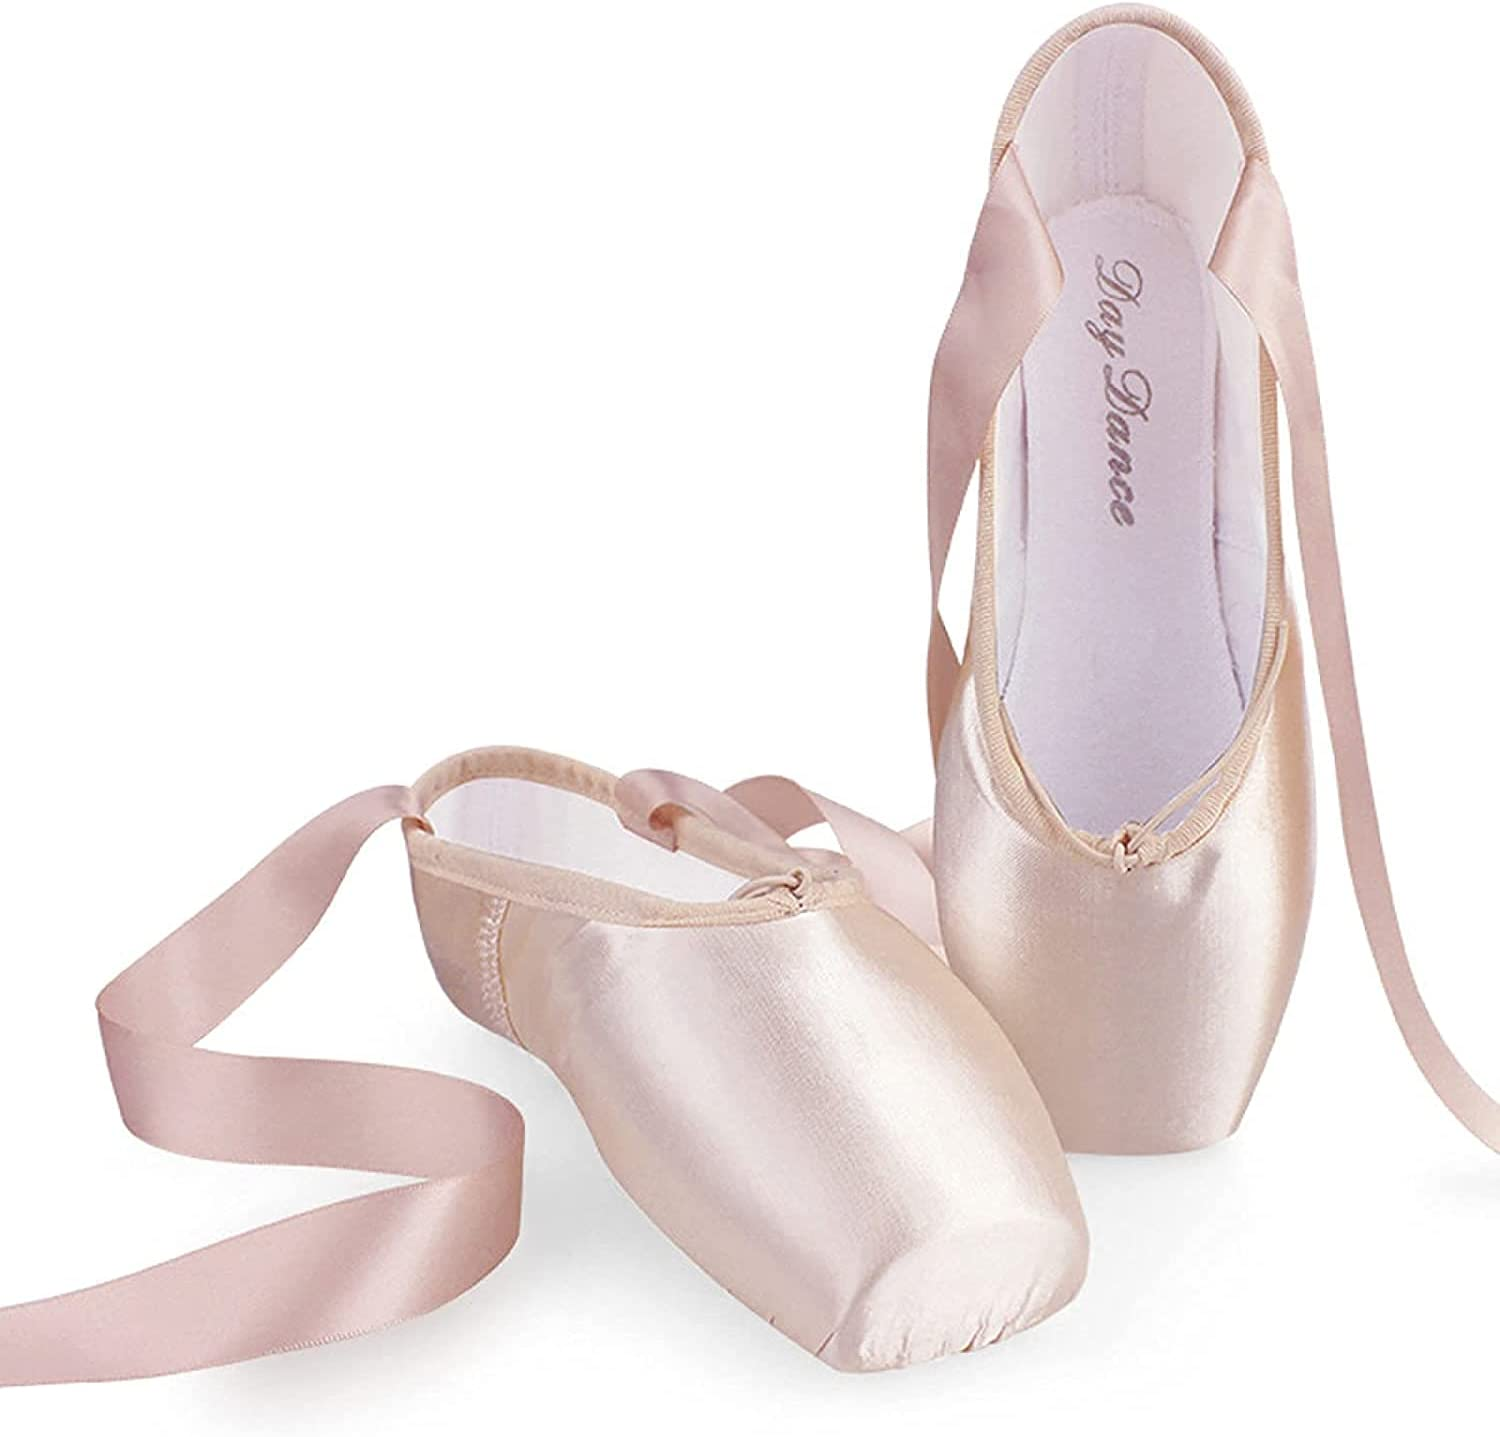 Ballet Pointe Shoes, Pink Professional Dance Shoes Full Sole Satin Ballet Shoes-with Sewn Ribbon for Girls Women (Color : Pink Satin, Size : 39)